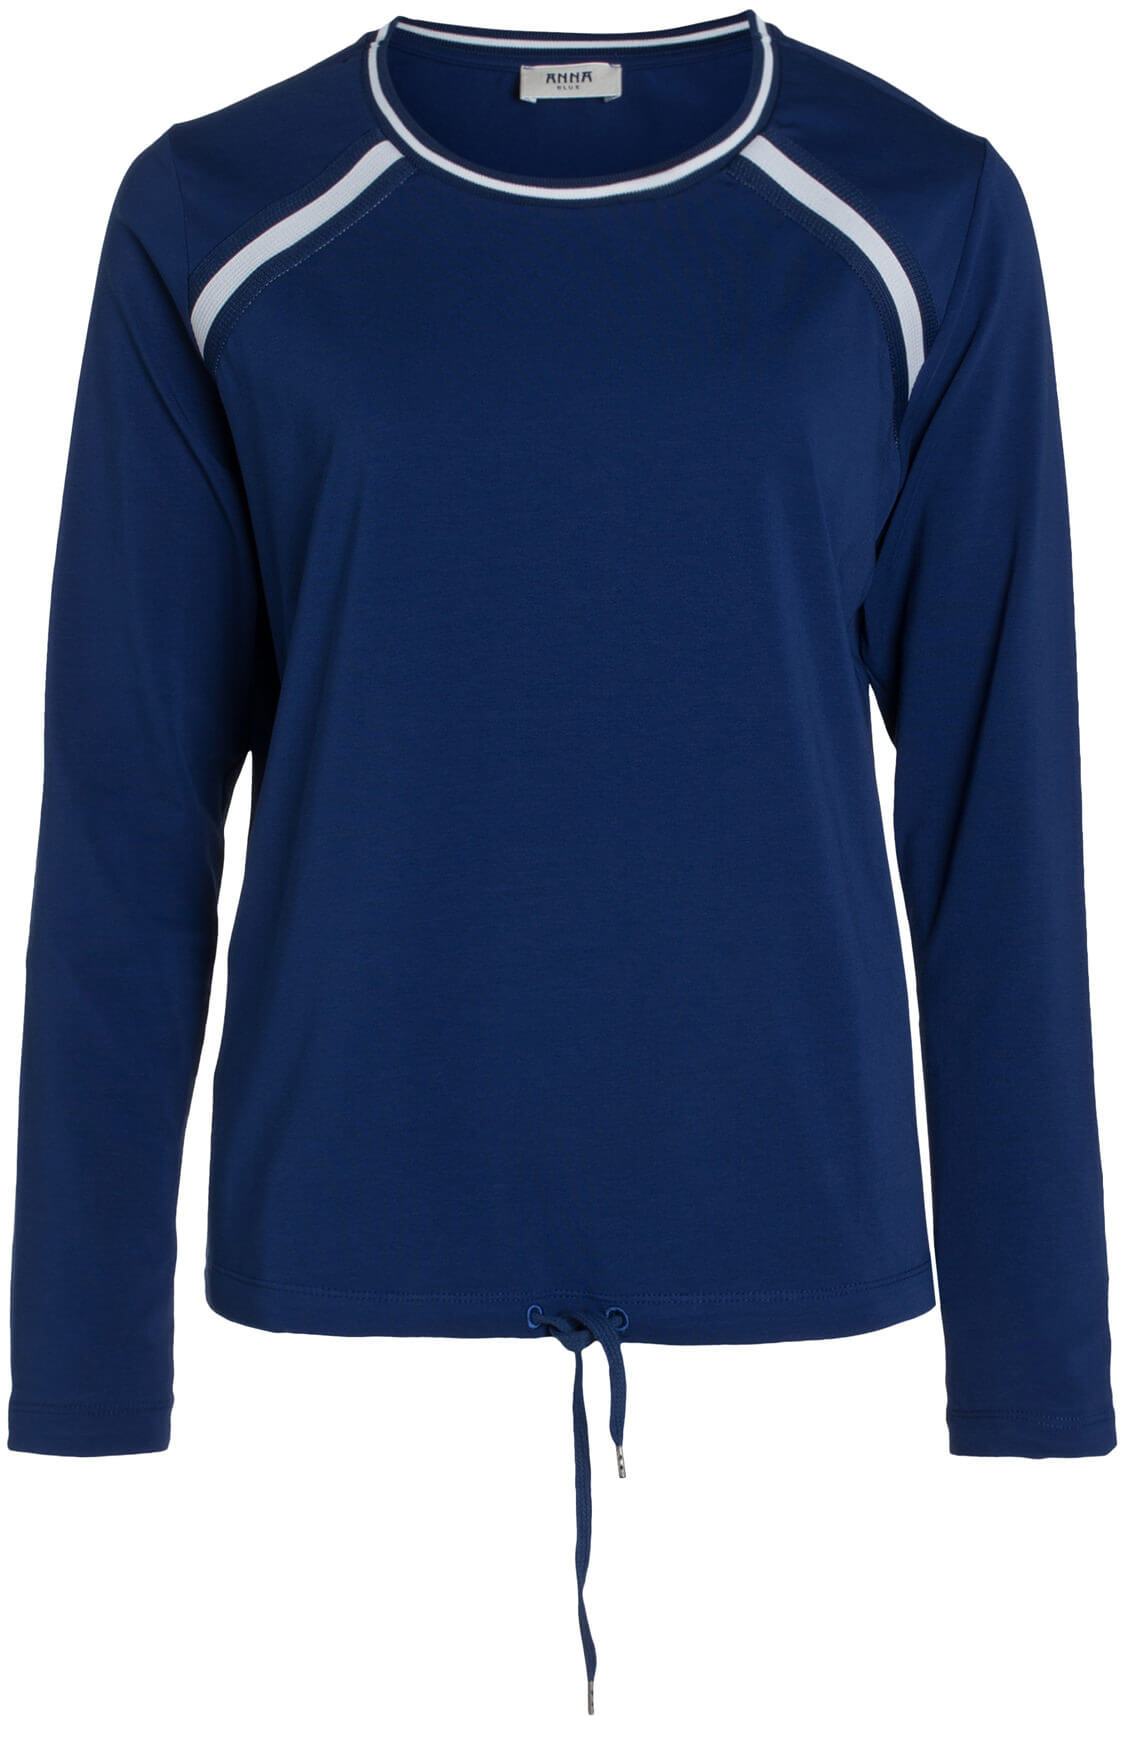 Anna Blue Dames Sportief shirt Blauw